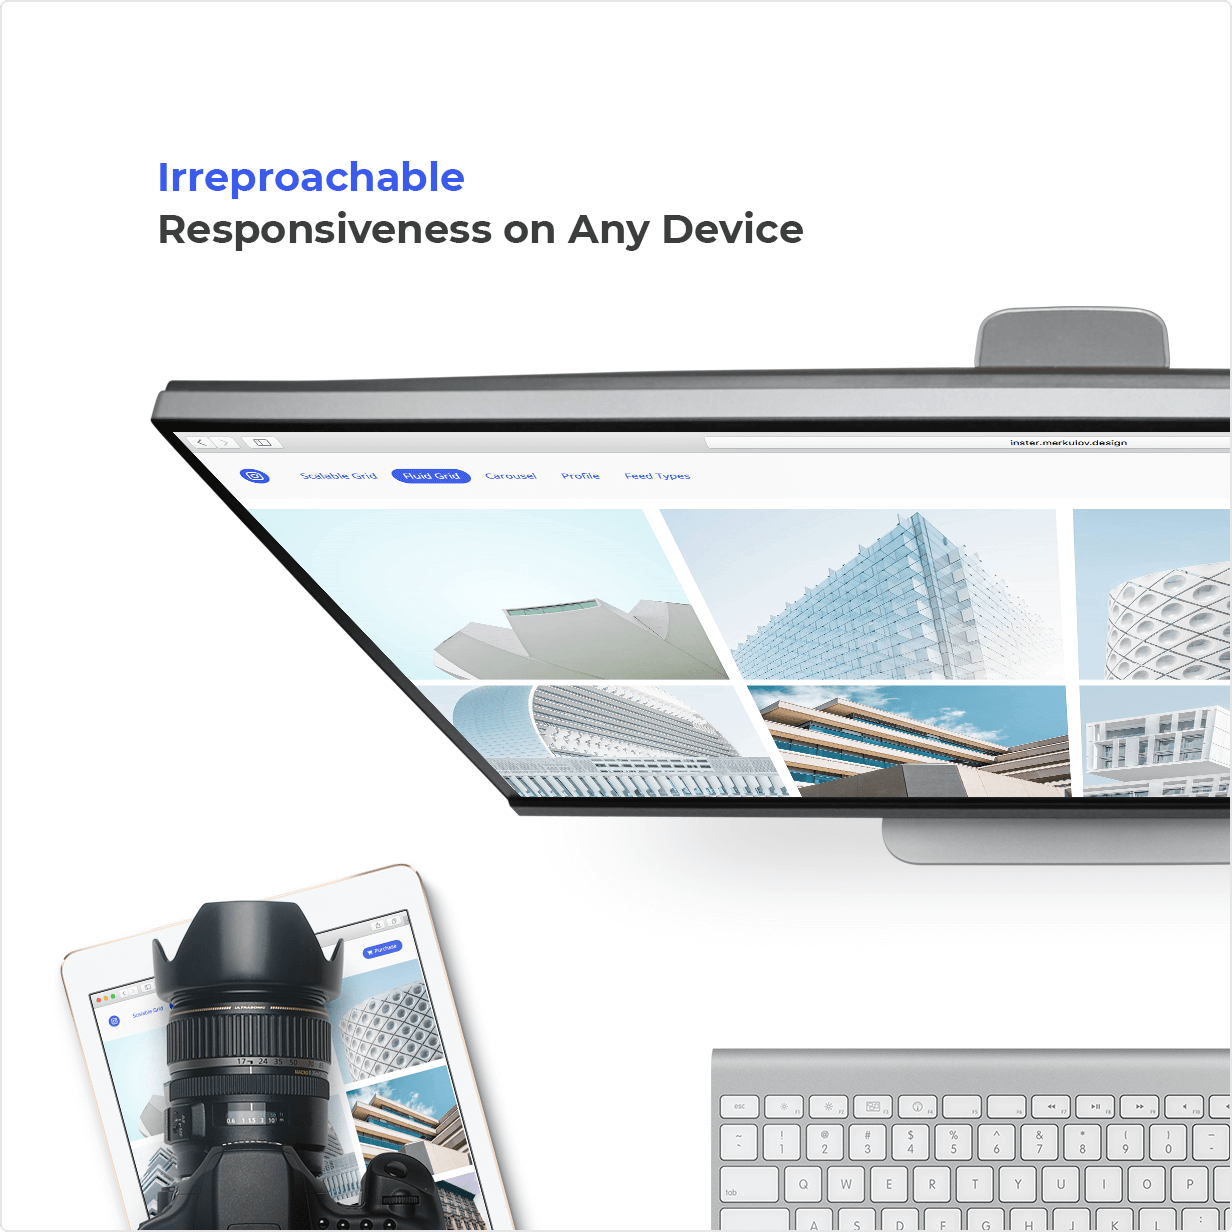 Irreproachable Responsiveness on Any Device